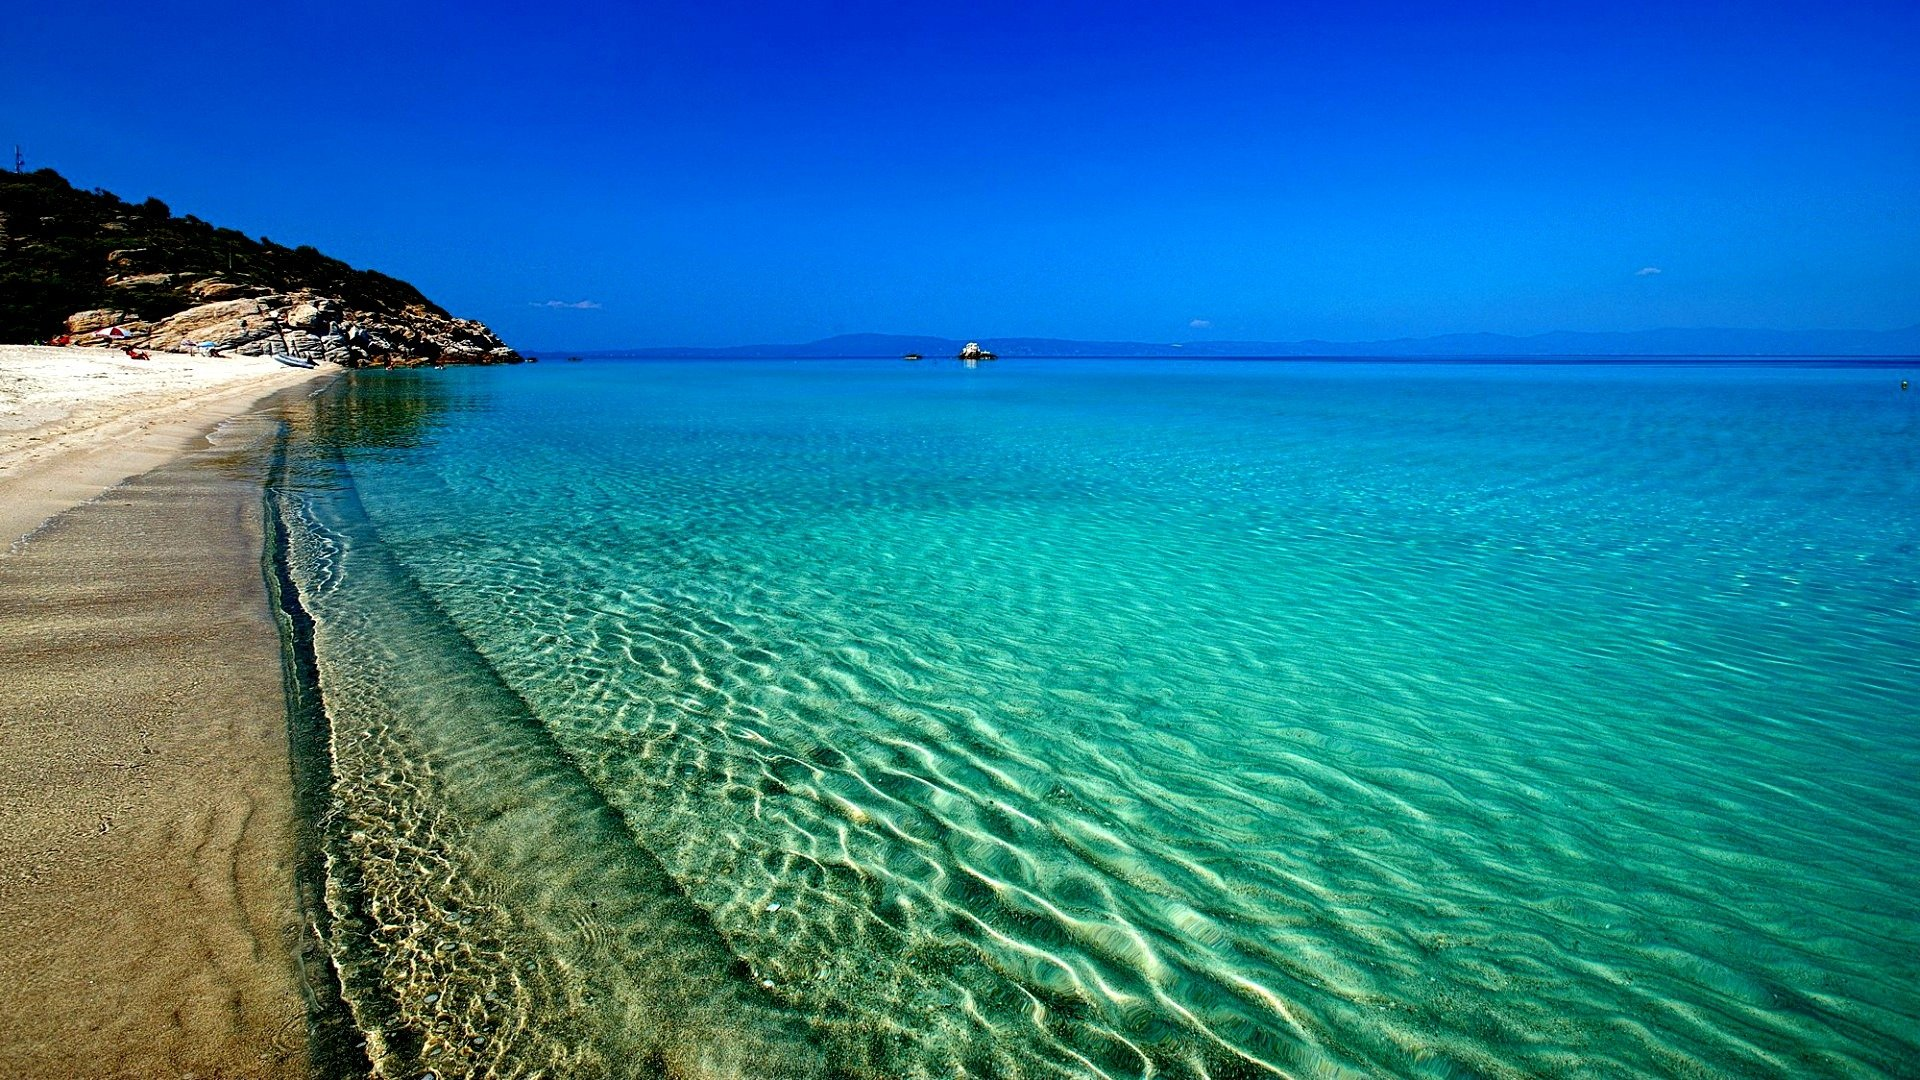 Clearest Ocean Water In The World Beach Full Hd Wallpaper And Background Image 1920x1080